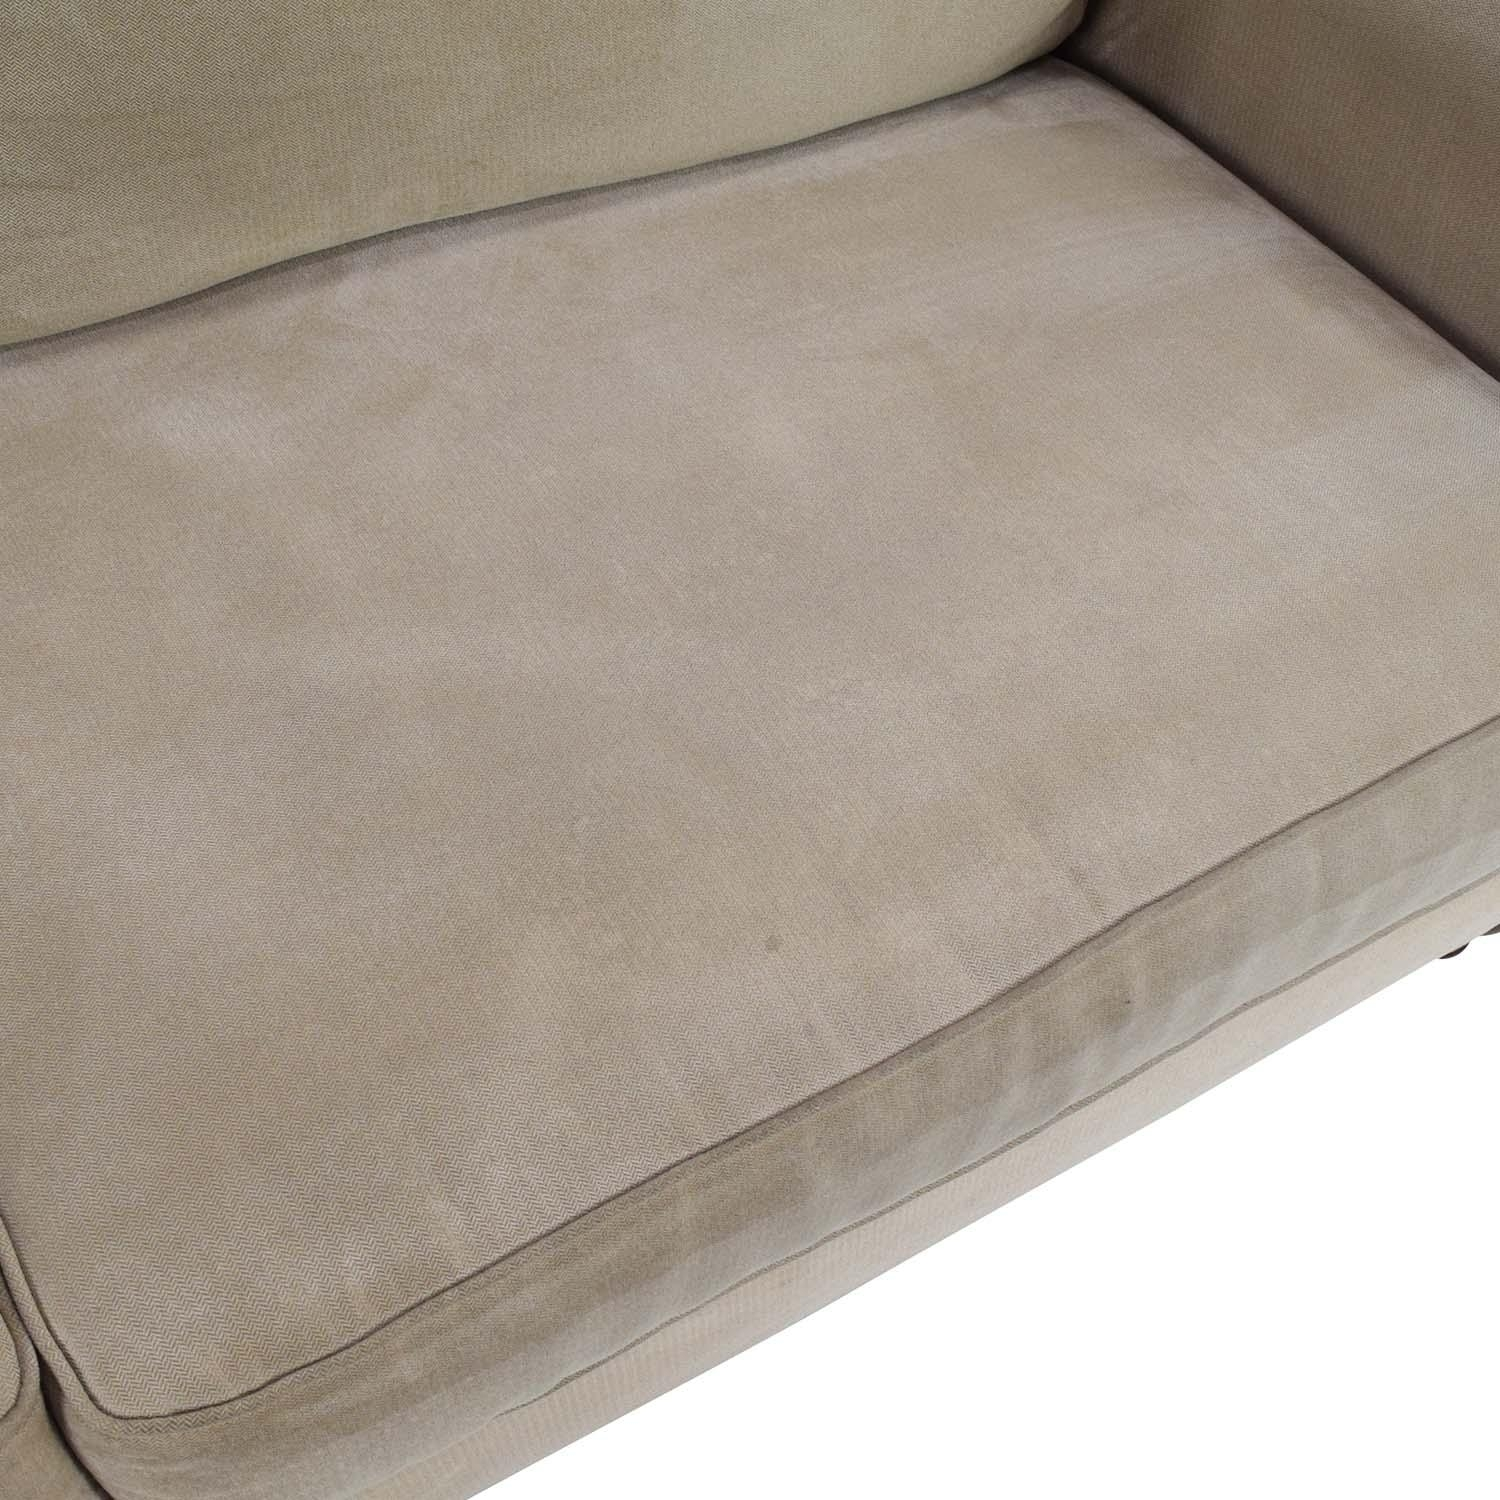 80% Off – Pier 1 Imports Pier 1 Alton Rolled Arm Sofa / Sofas Pertaining To Pier 1 Sofa Beds (Image 7 of 20)